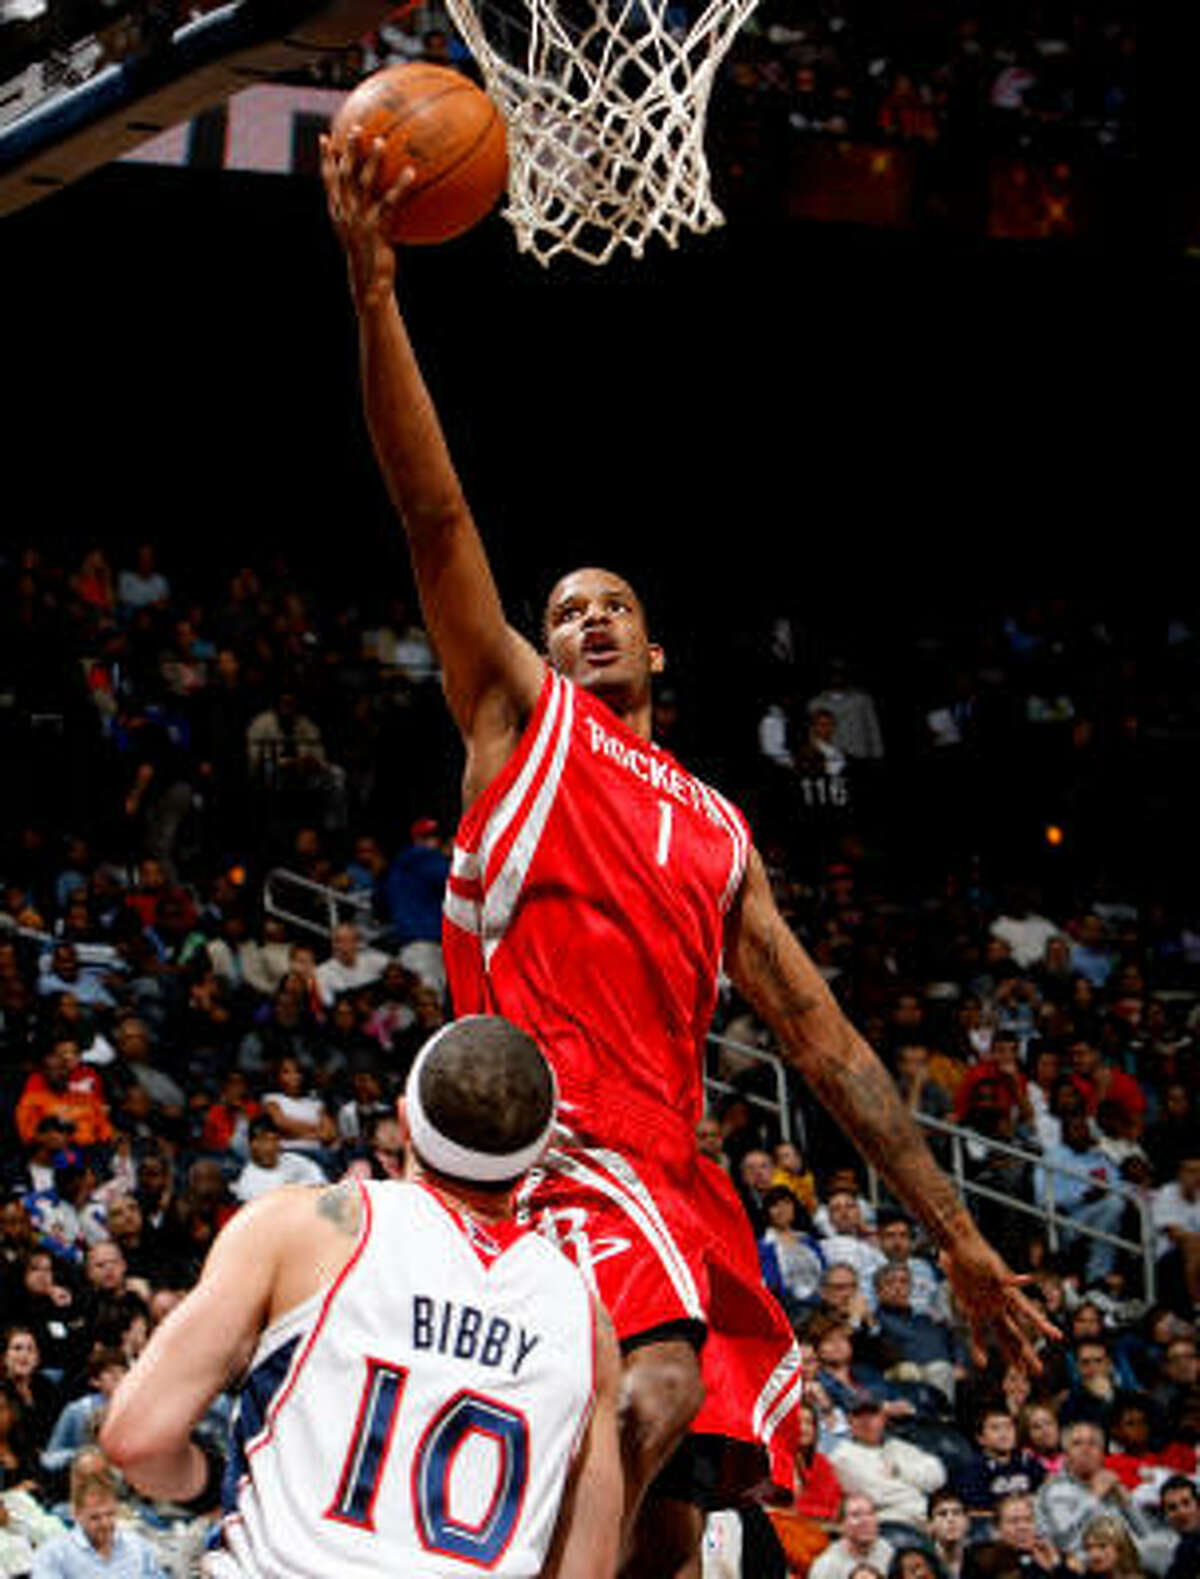 Trevor Ariza shoots over Hawks guard Mike Bibby during the game at Philips Arena in Atlanta.